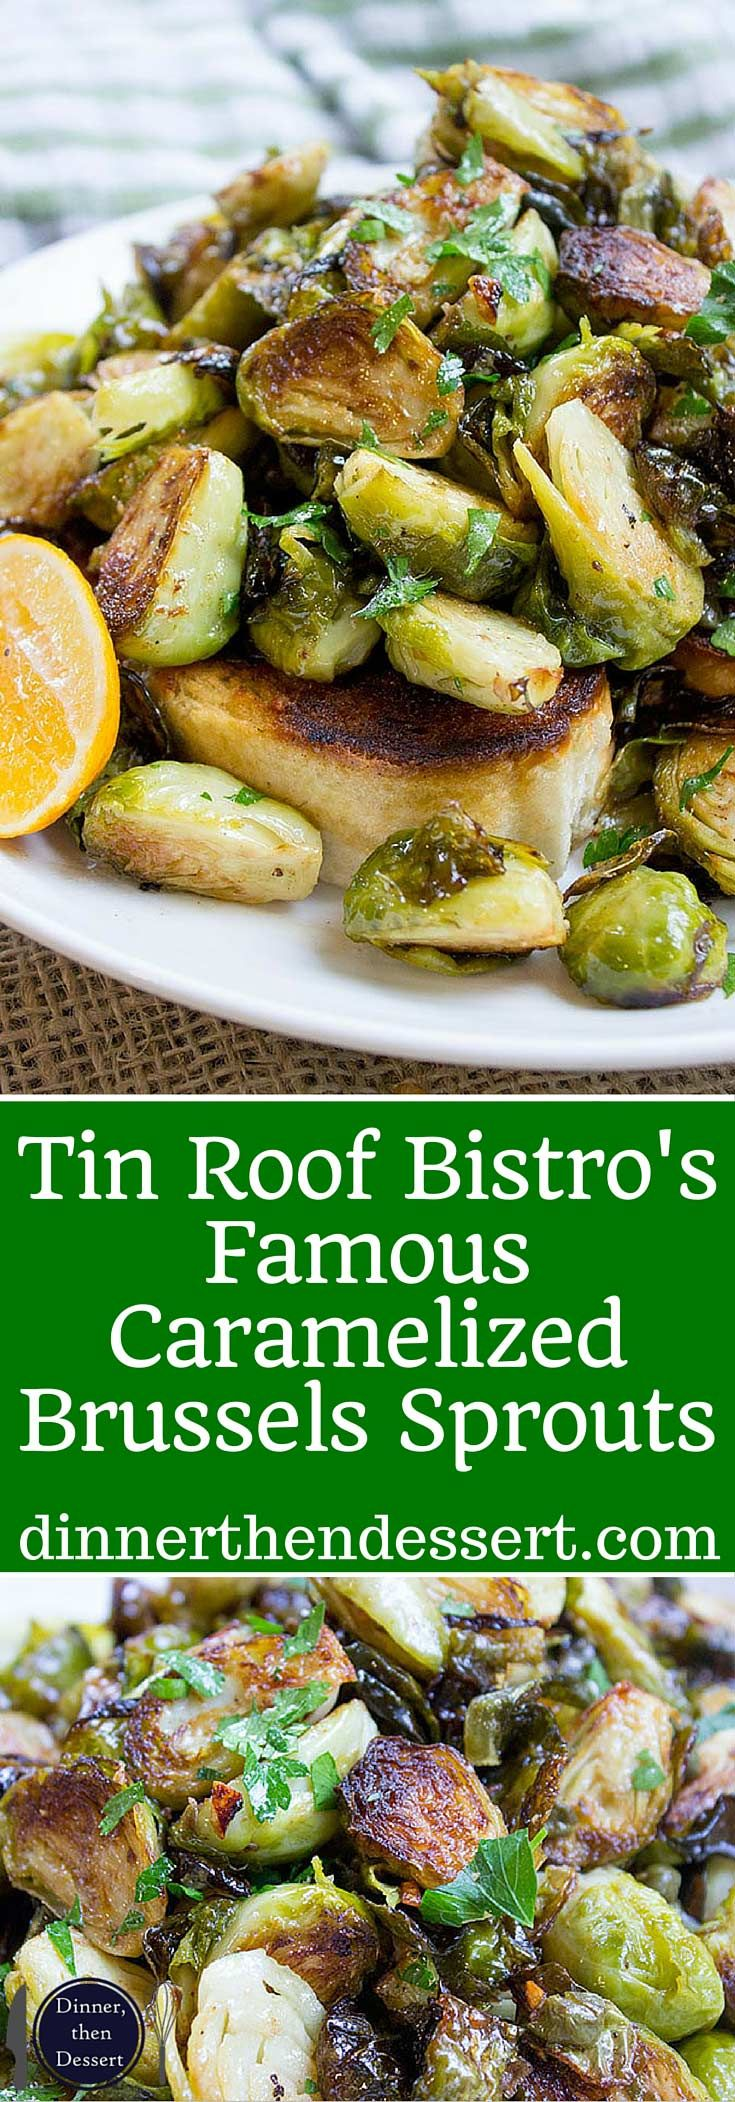 Tin Roof Bistro Brussels Sprouts Are Caramelized And